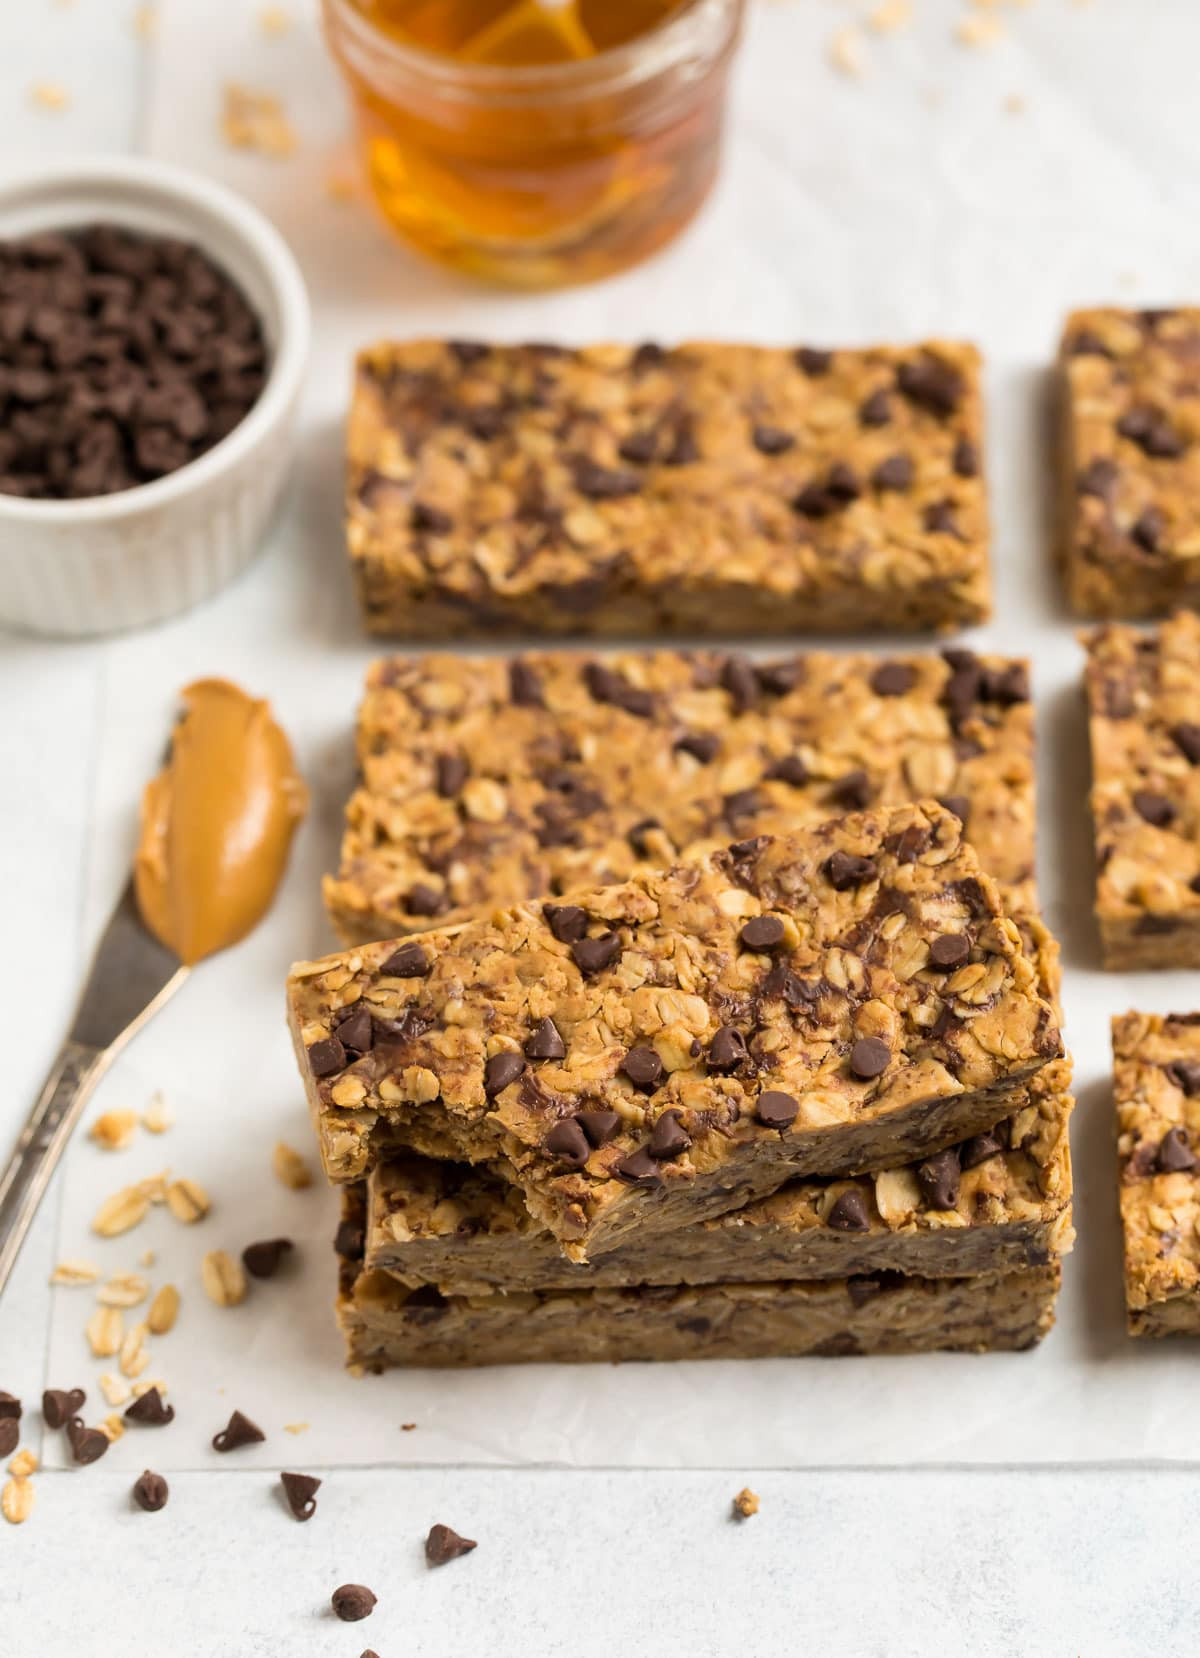 Best ideas about DIY Protein Bars . Save or Pin Peanut Butter Protein Bars Now.